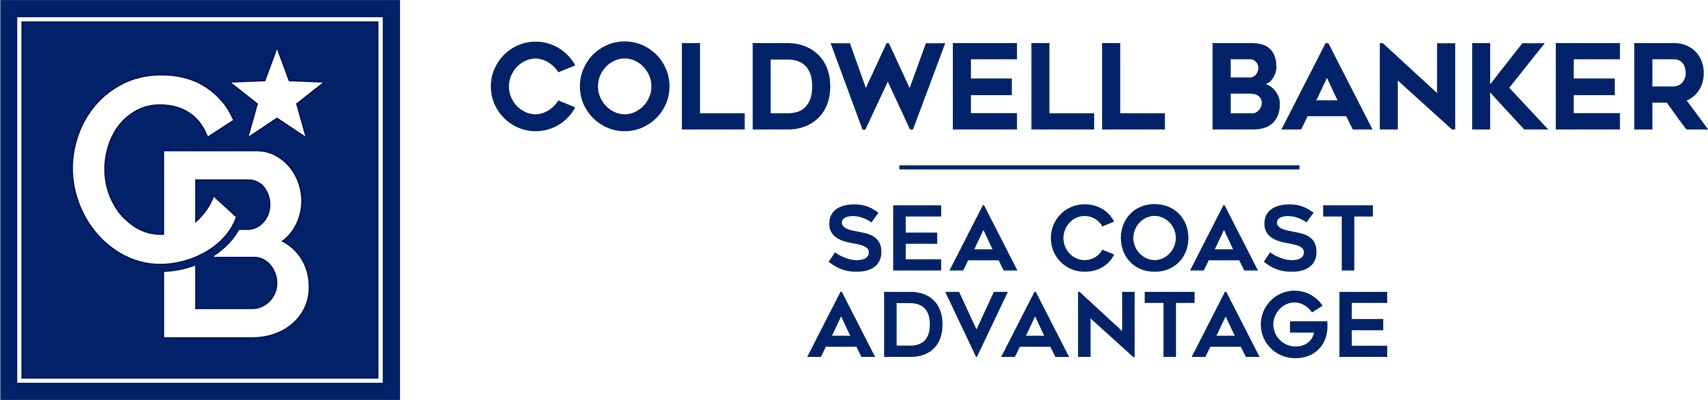 Sumner Powell - Coldwell Banker Sea Coast Advantage Realty Logo